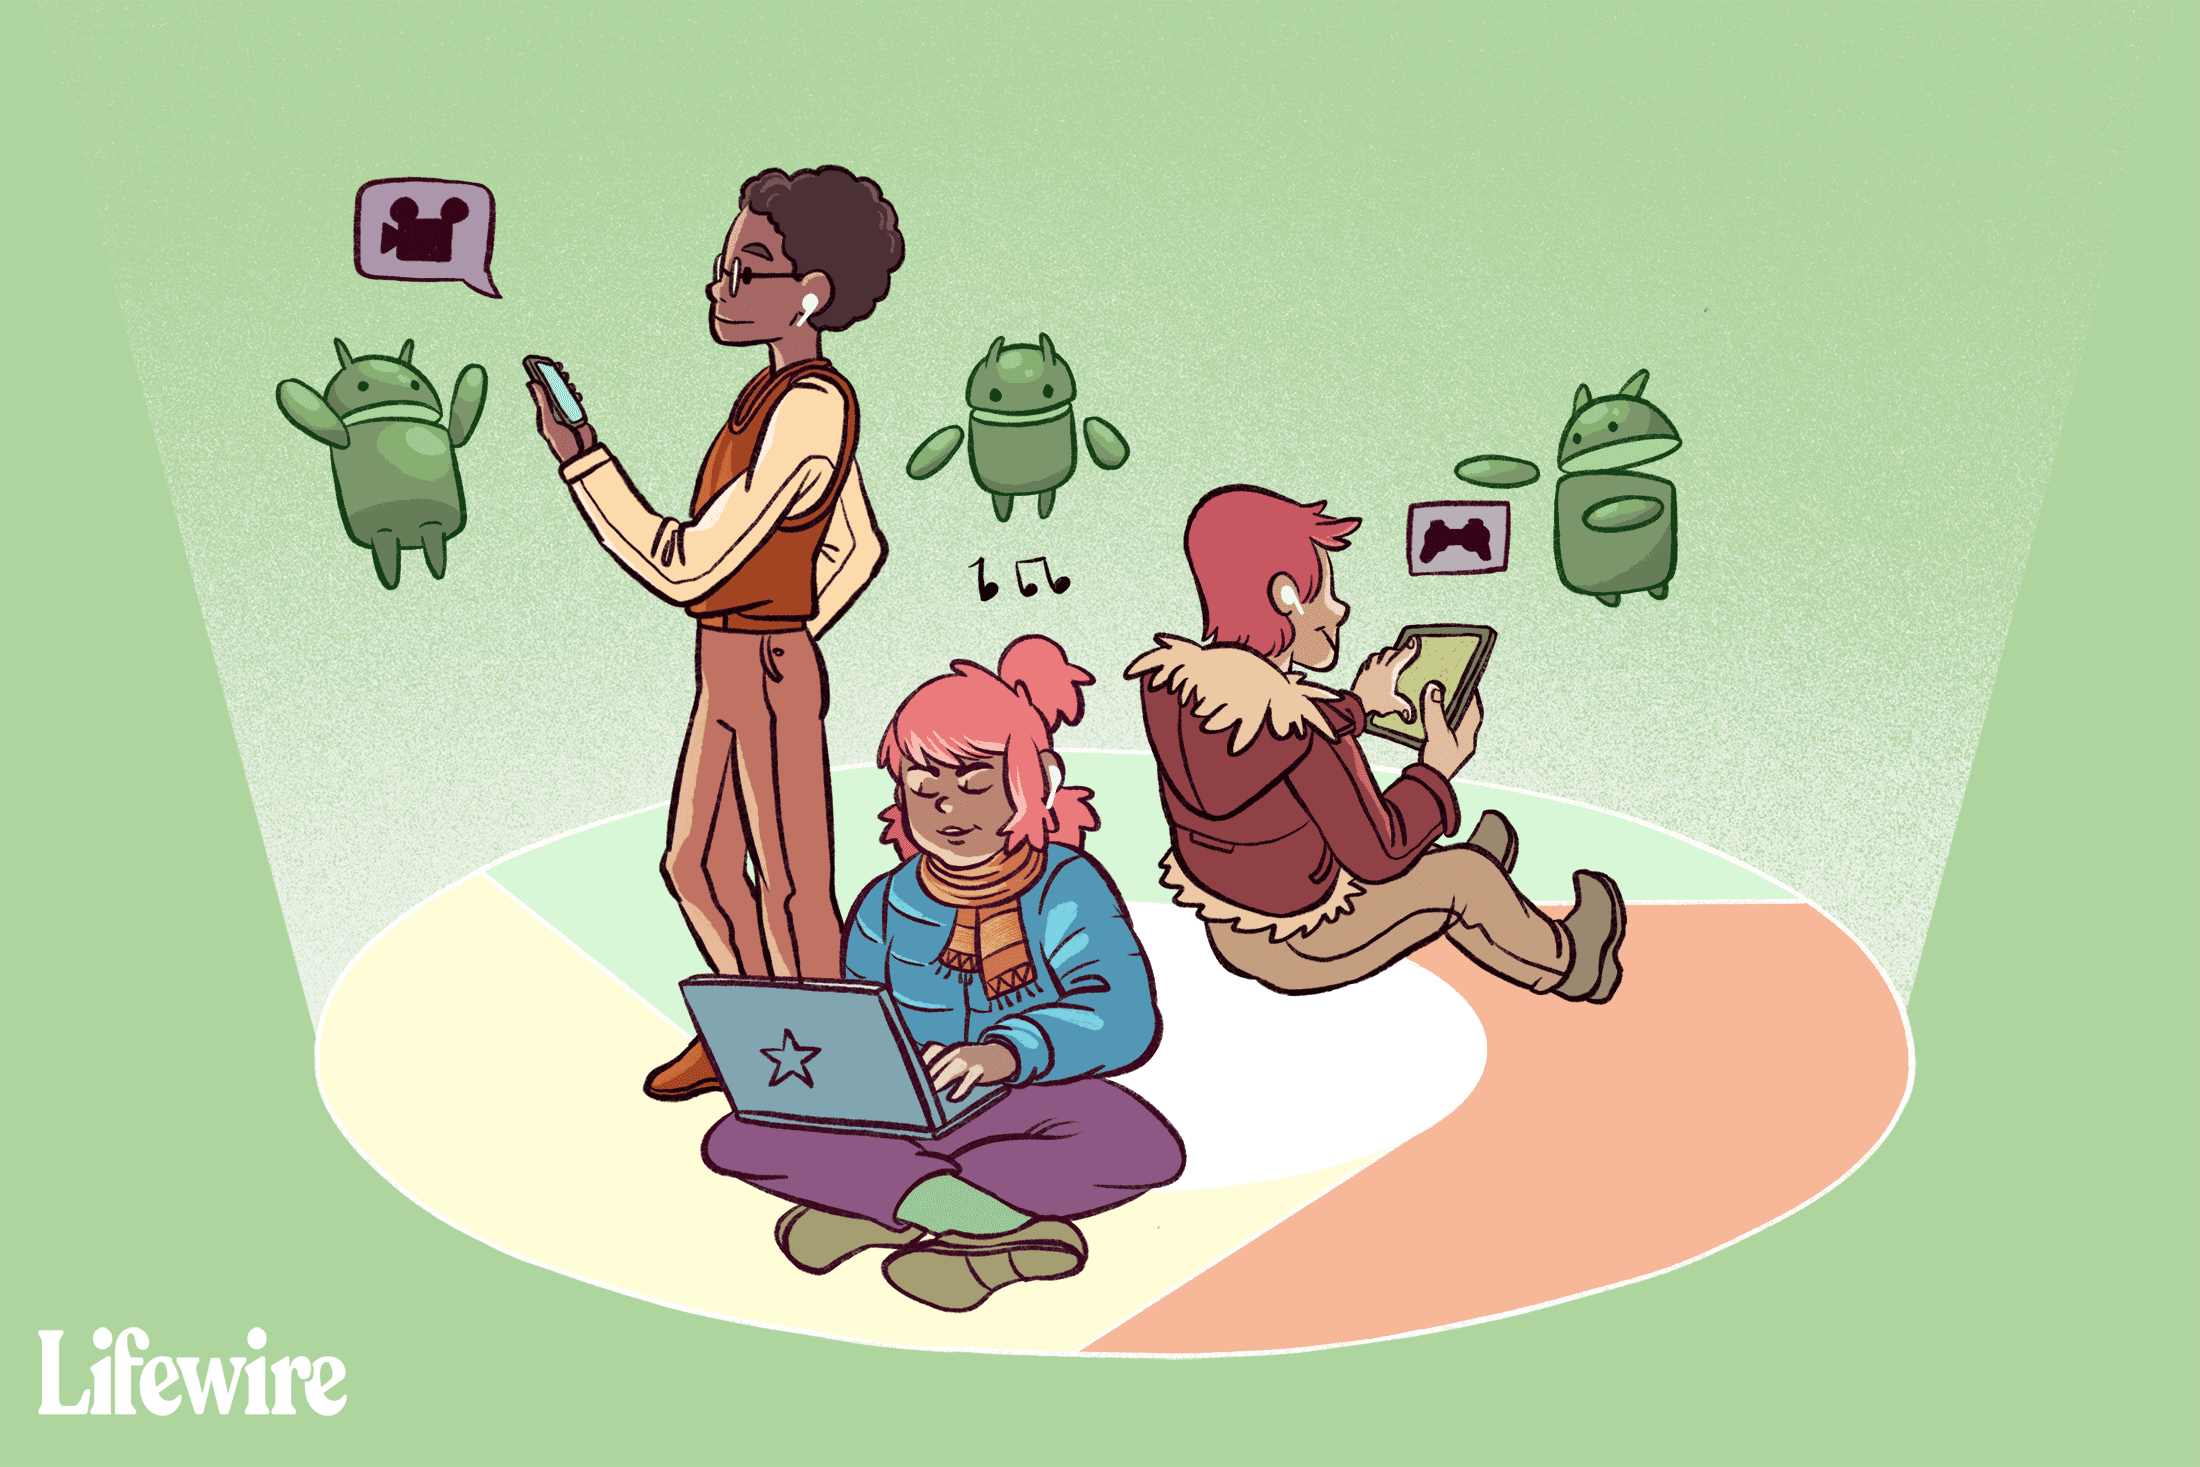 Three people using AirPods with non-Apple devices